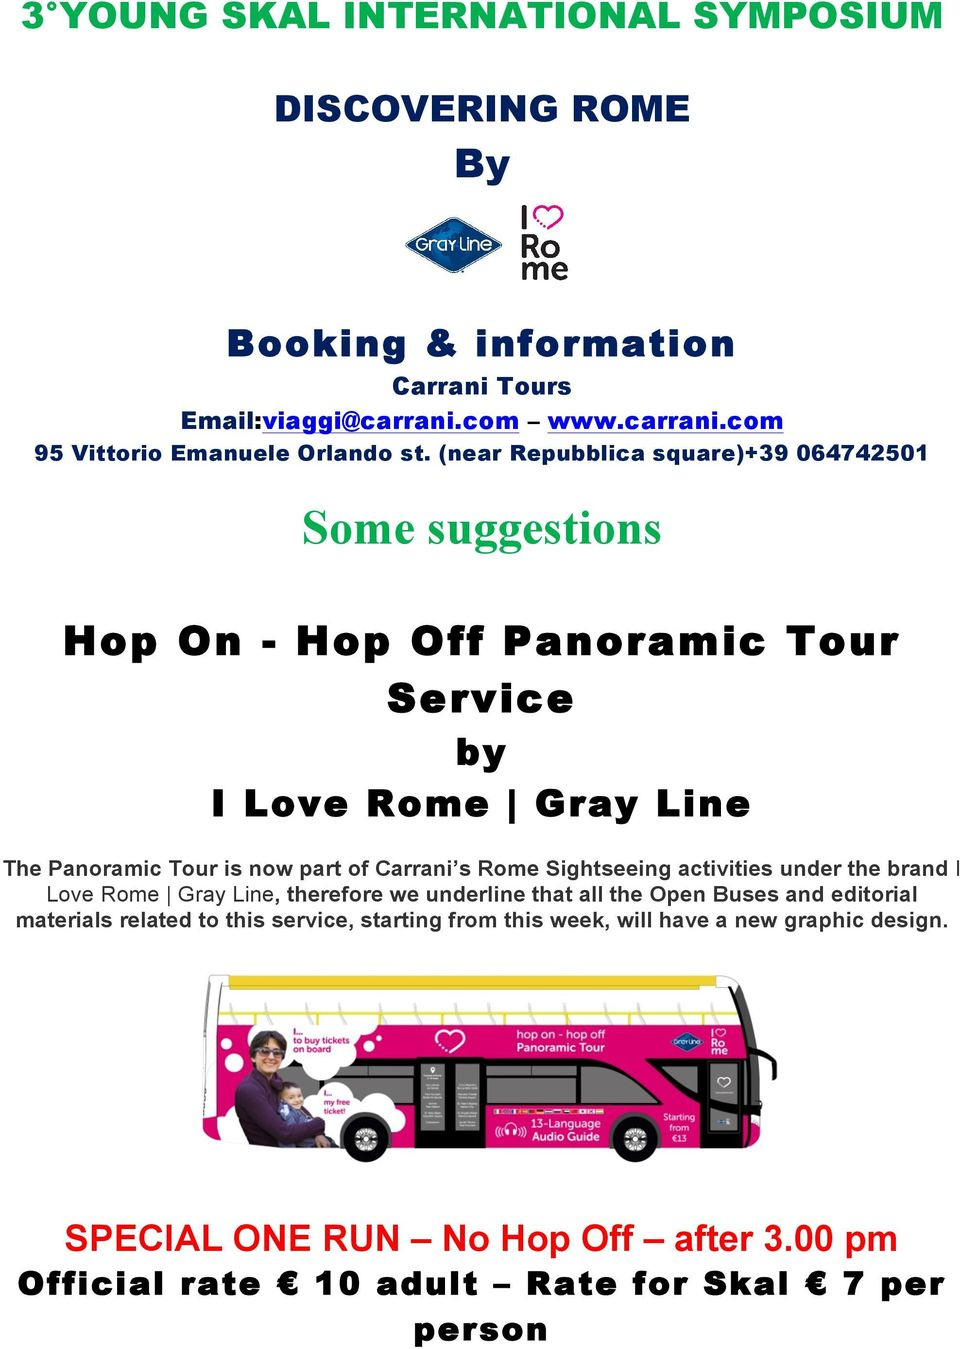 Carrani s Rome Sightseeing activities under the brand I Love Rome Gray Line, therefore we underline that all the Open Buses and editorial materials related to